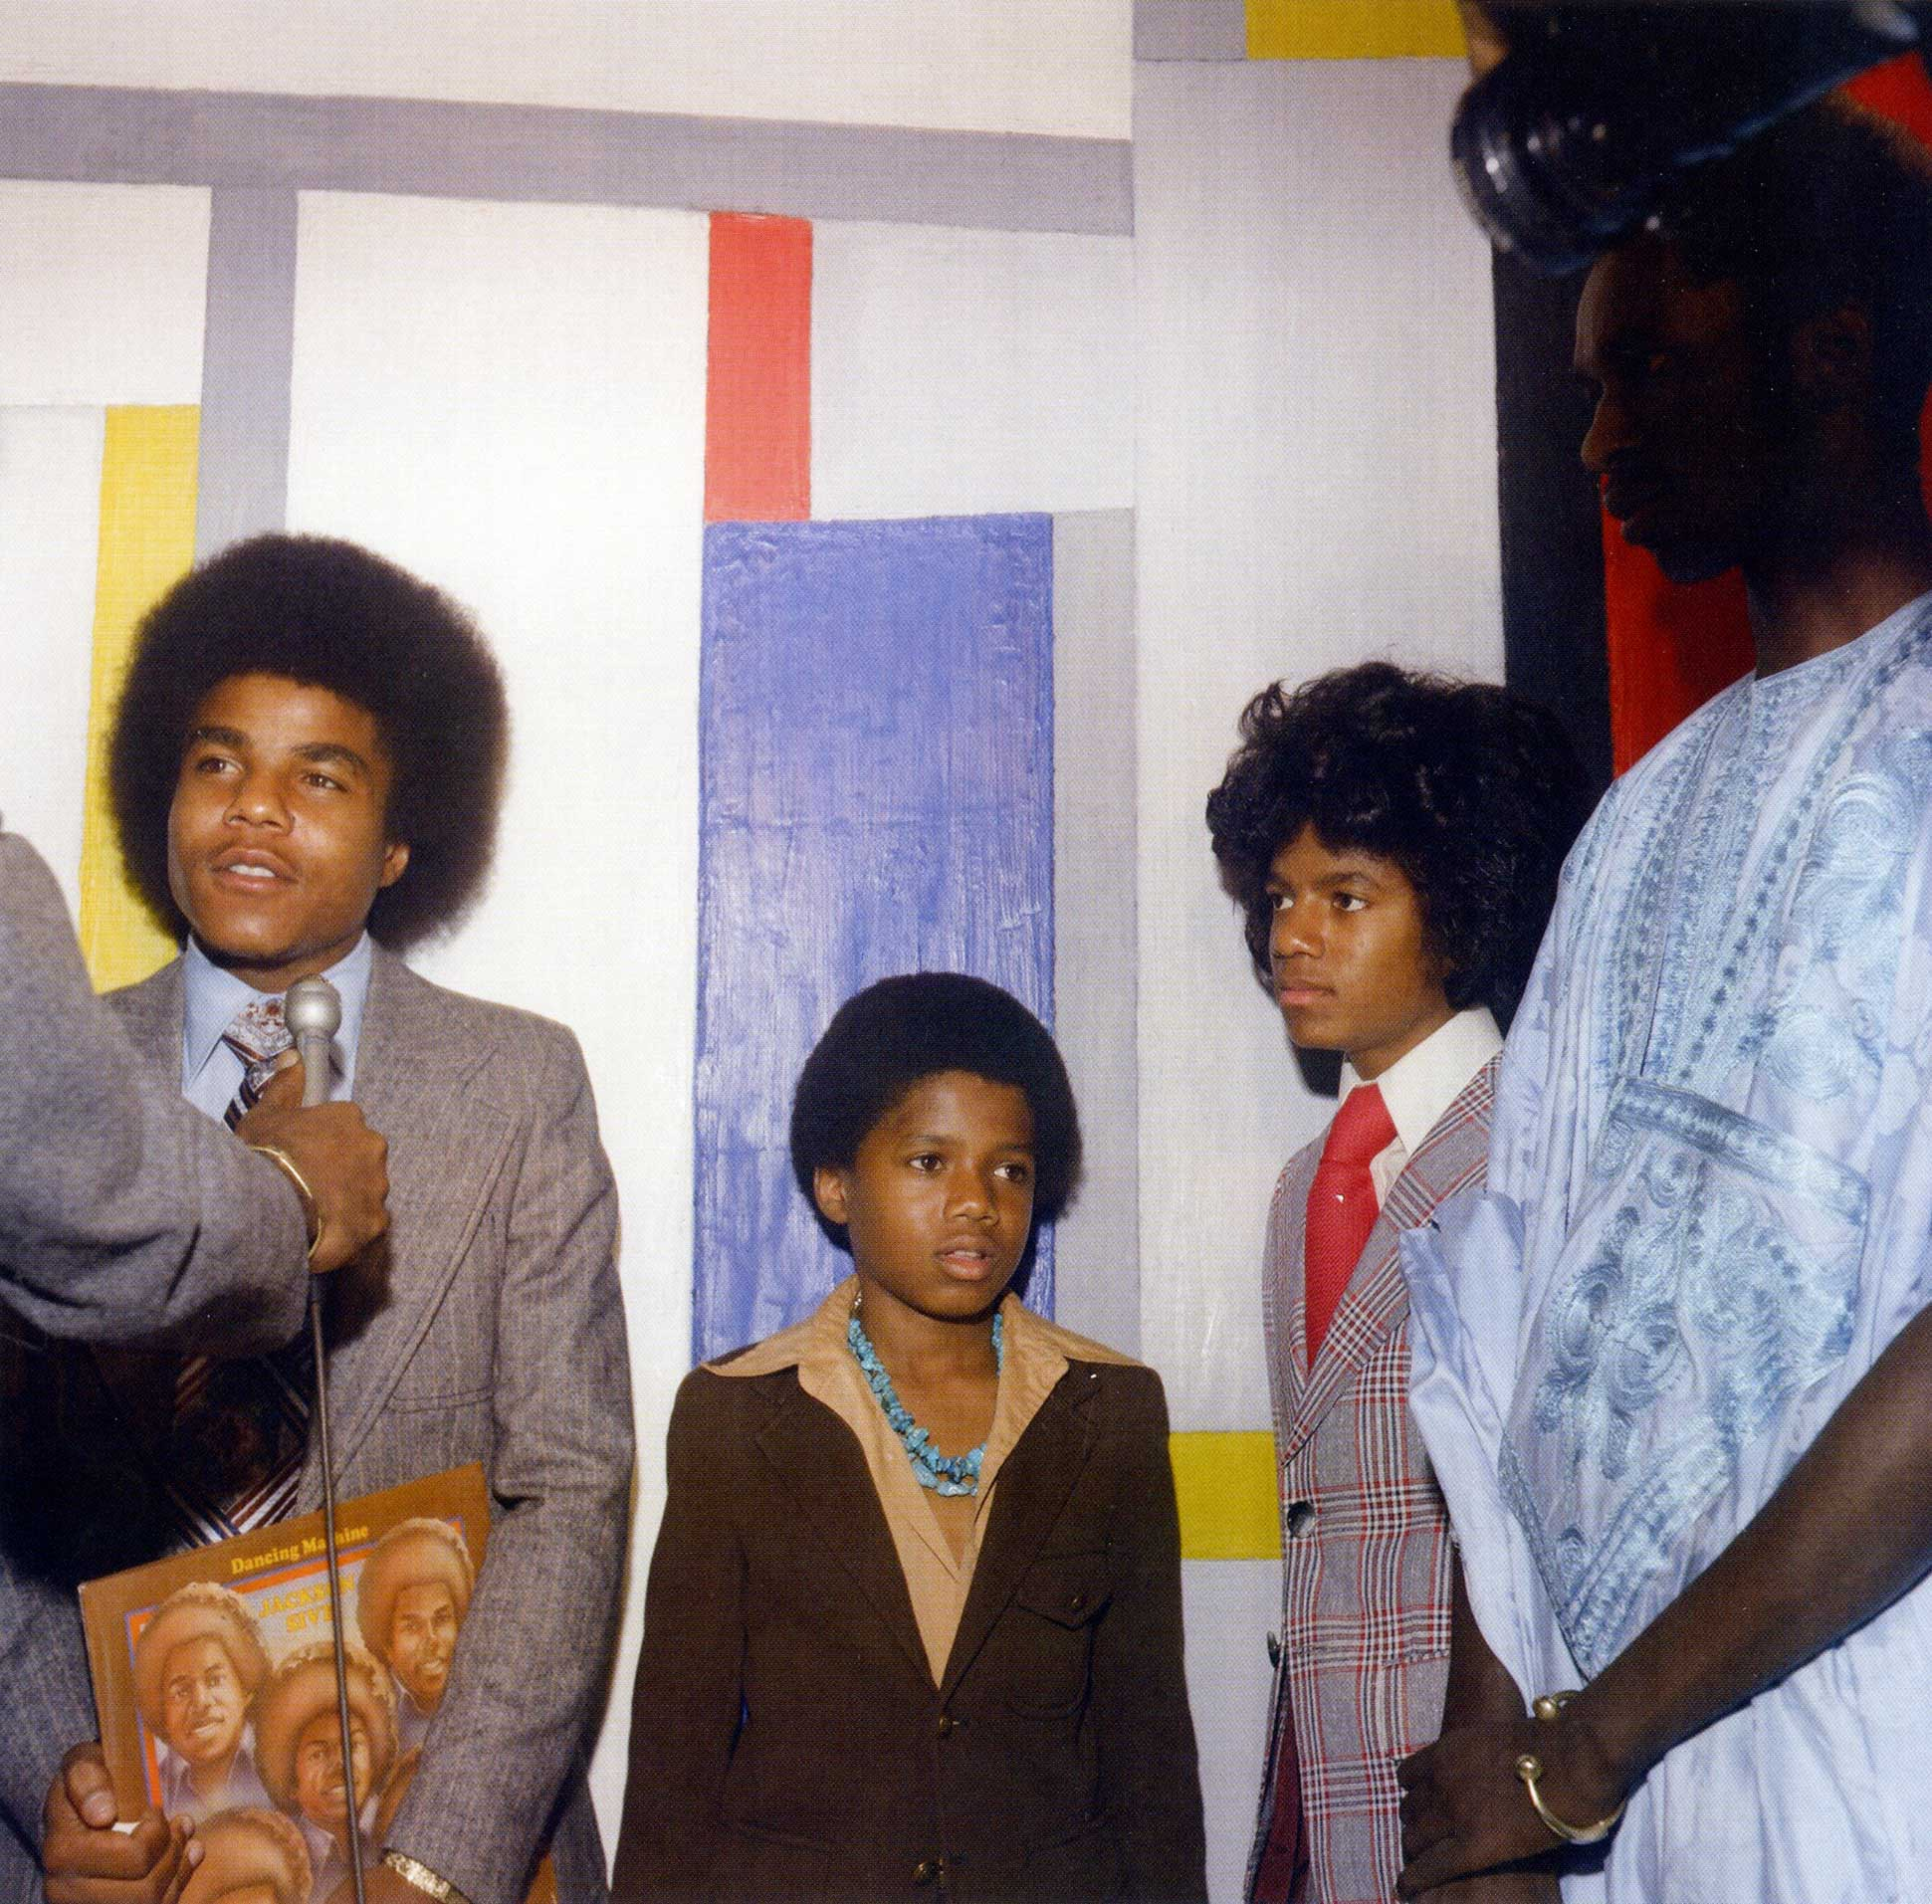 From left: Tito Jackson, Randy Jackson, Michael Jackson, and Mamadou Johnny Sekka in New York City in the 1970s.